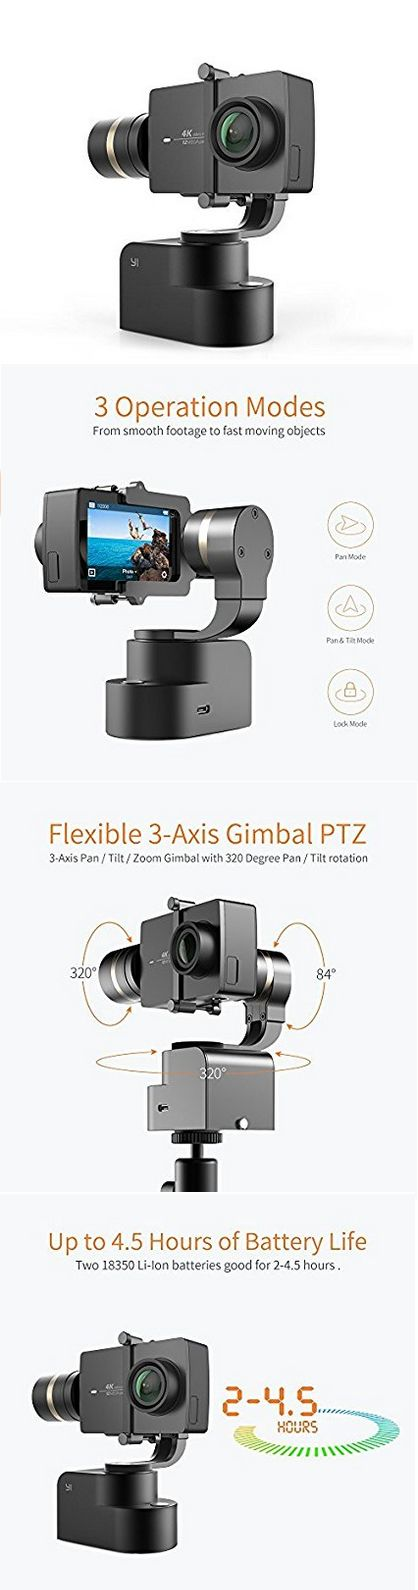 YI Gimbal 3-Axis Handheld Stabilizer for Yi Lite, 4K, 4K+ and other Action Cameras (Gimbal Only) #gimbal #action #batteries #charger #videos #mountain #stick #mount #screw #firmware #cam #gopro #biking #gimbals #stable #footage #pro #video #fashion #style #shopping #usb #electronic #SmartWatch   #gifts